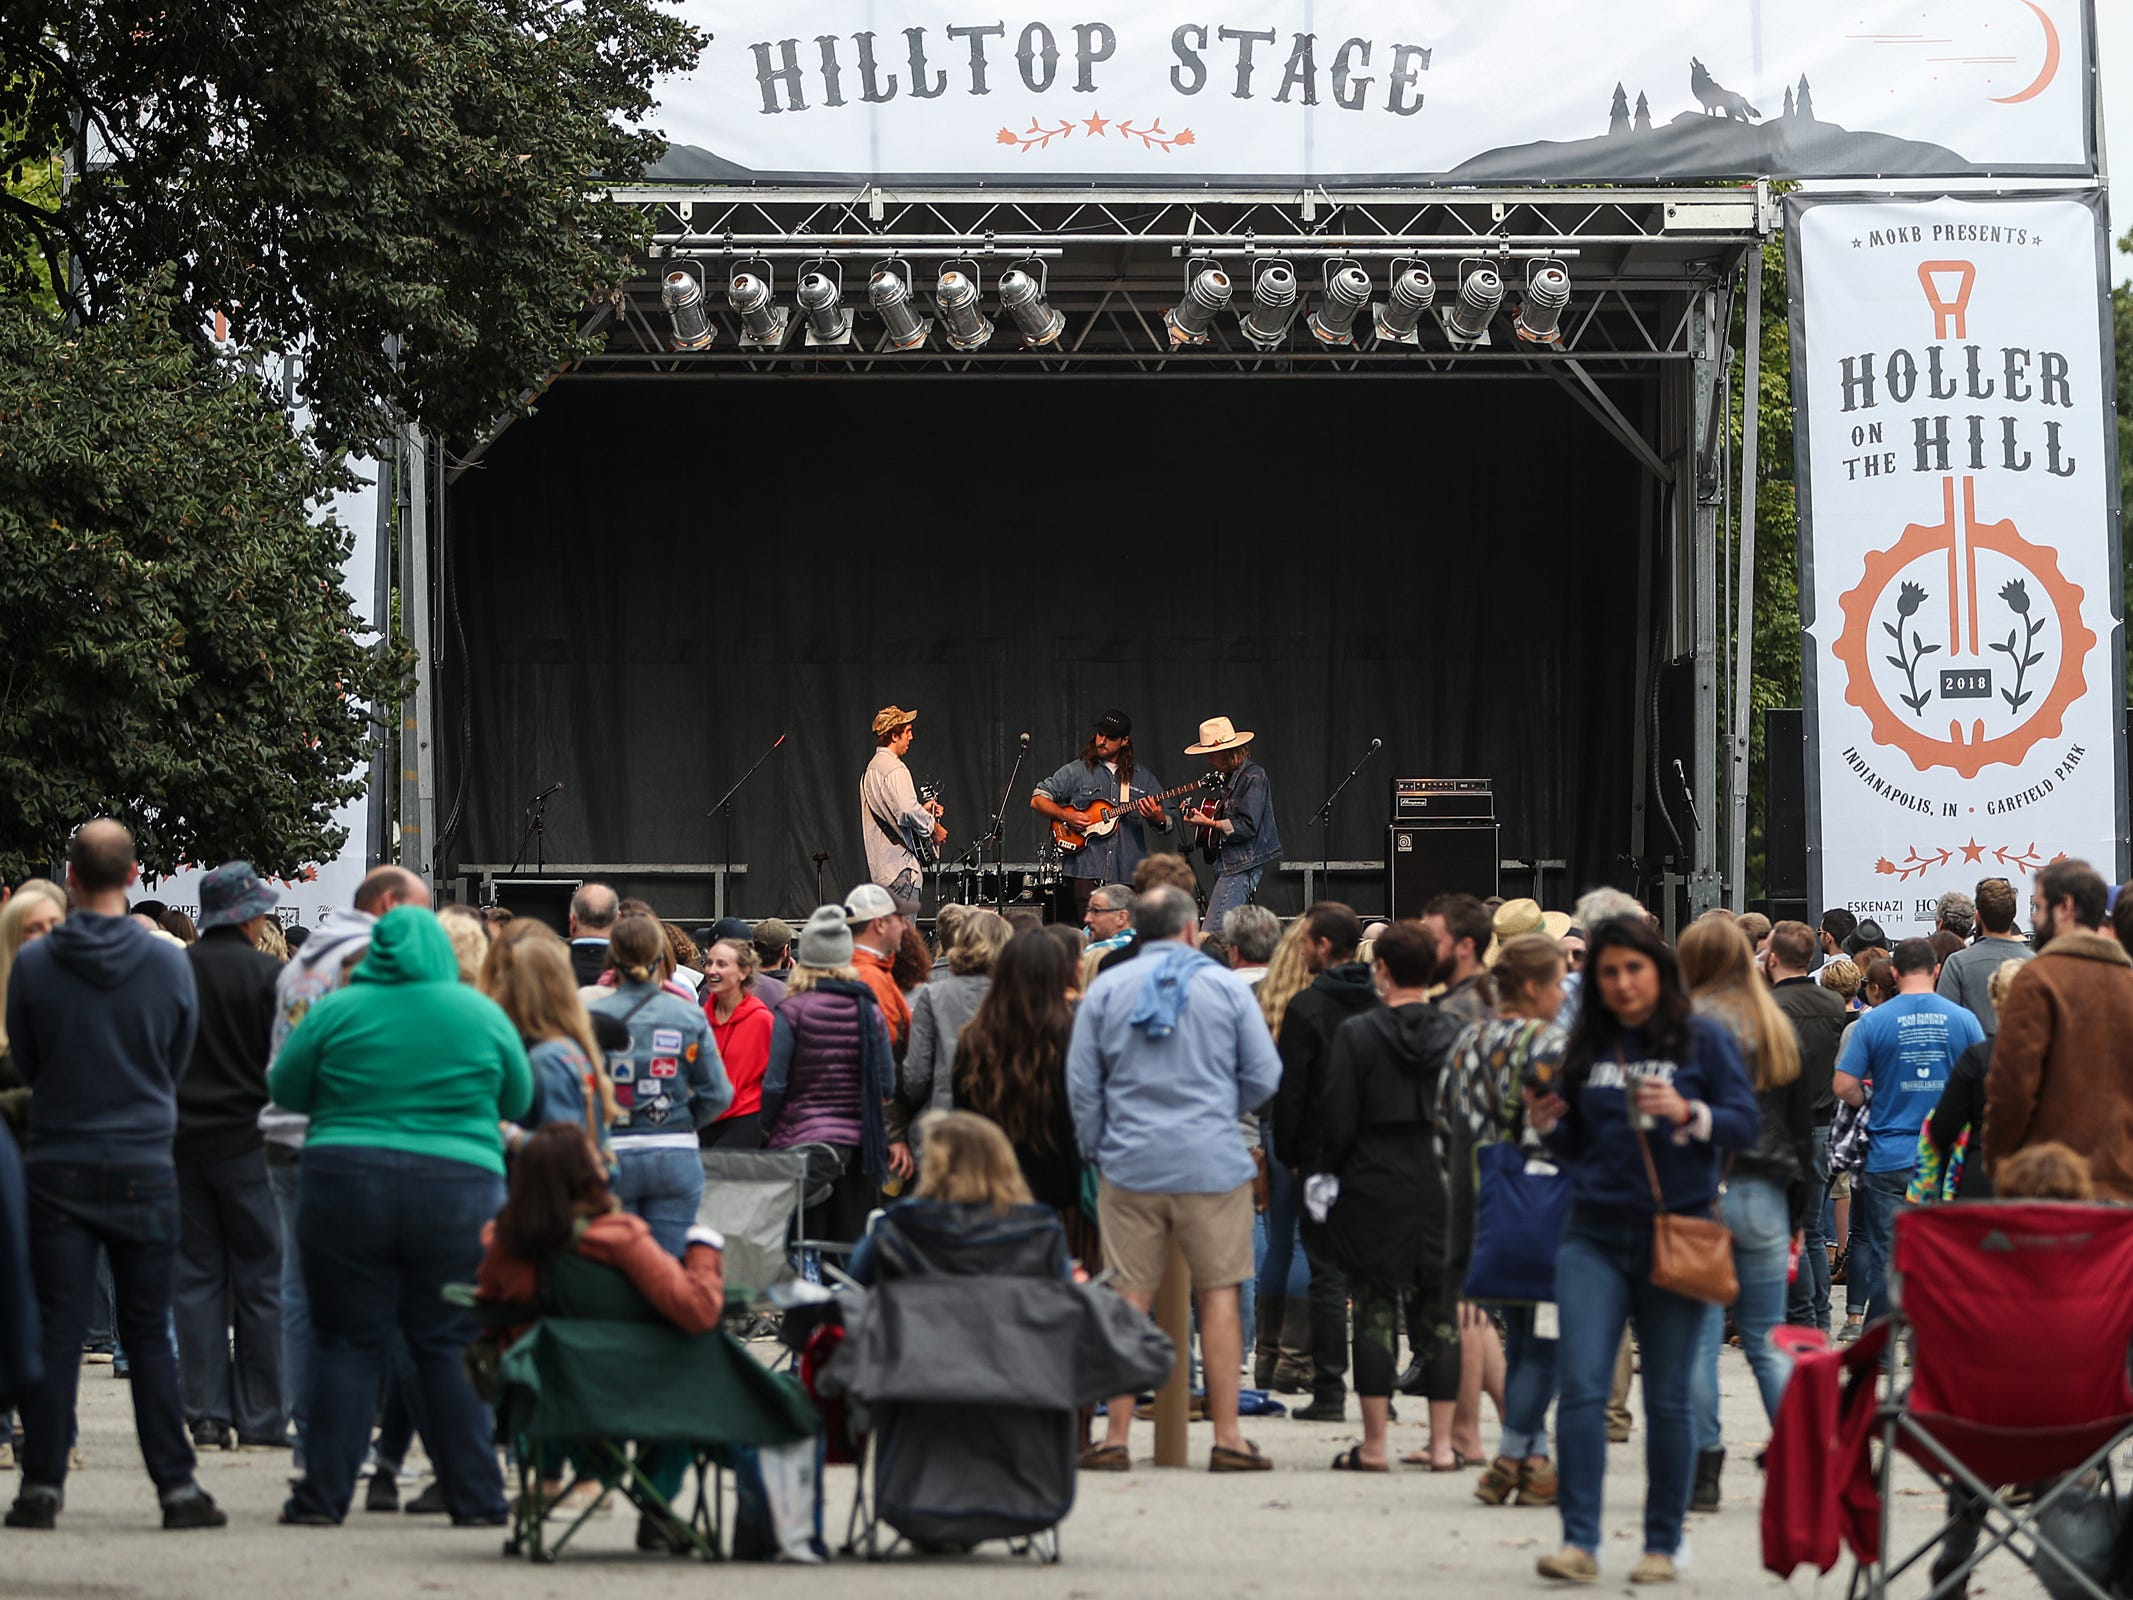 Spectators listen to Caamp's performance at the inaugural Holler on the Hill music festival at Garfield Park in Indianapolis, Saturday, Sept. 22, 2018. The festival features more than 30 performers across three stages on September 22 and 23.